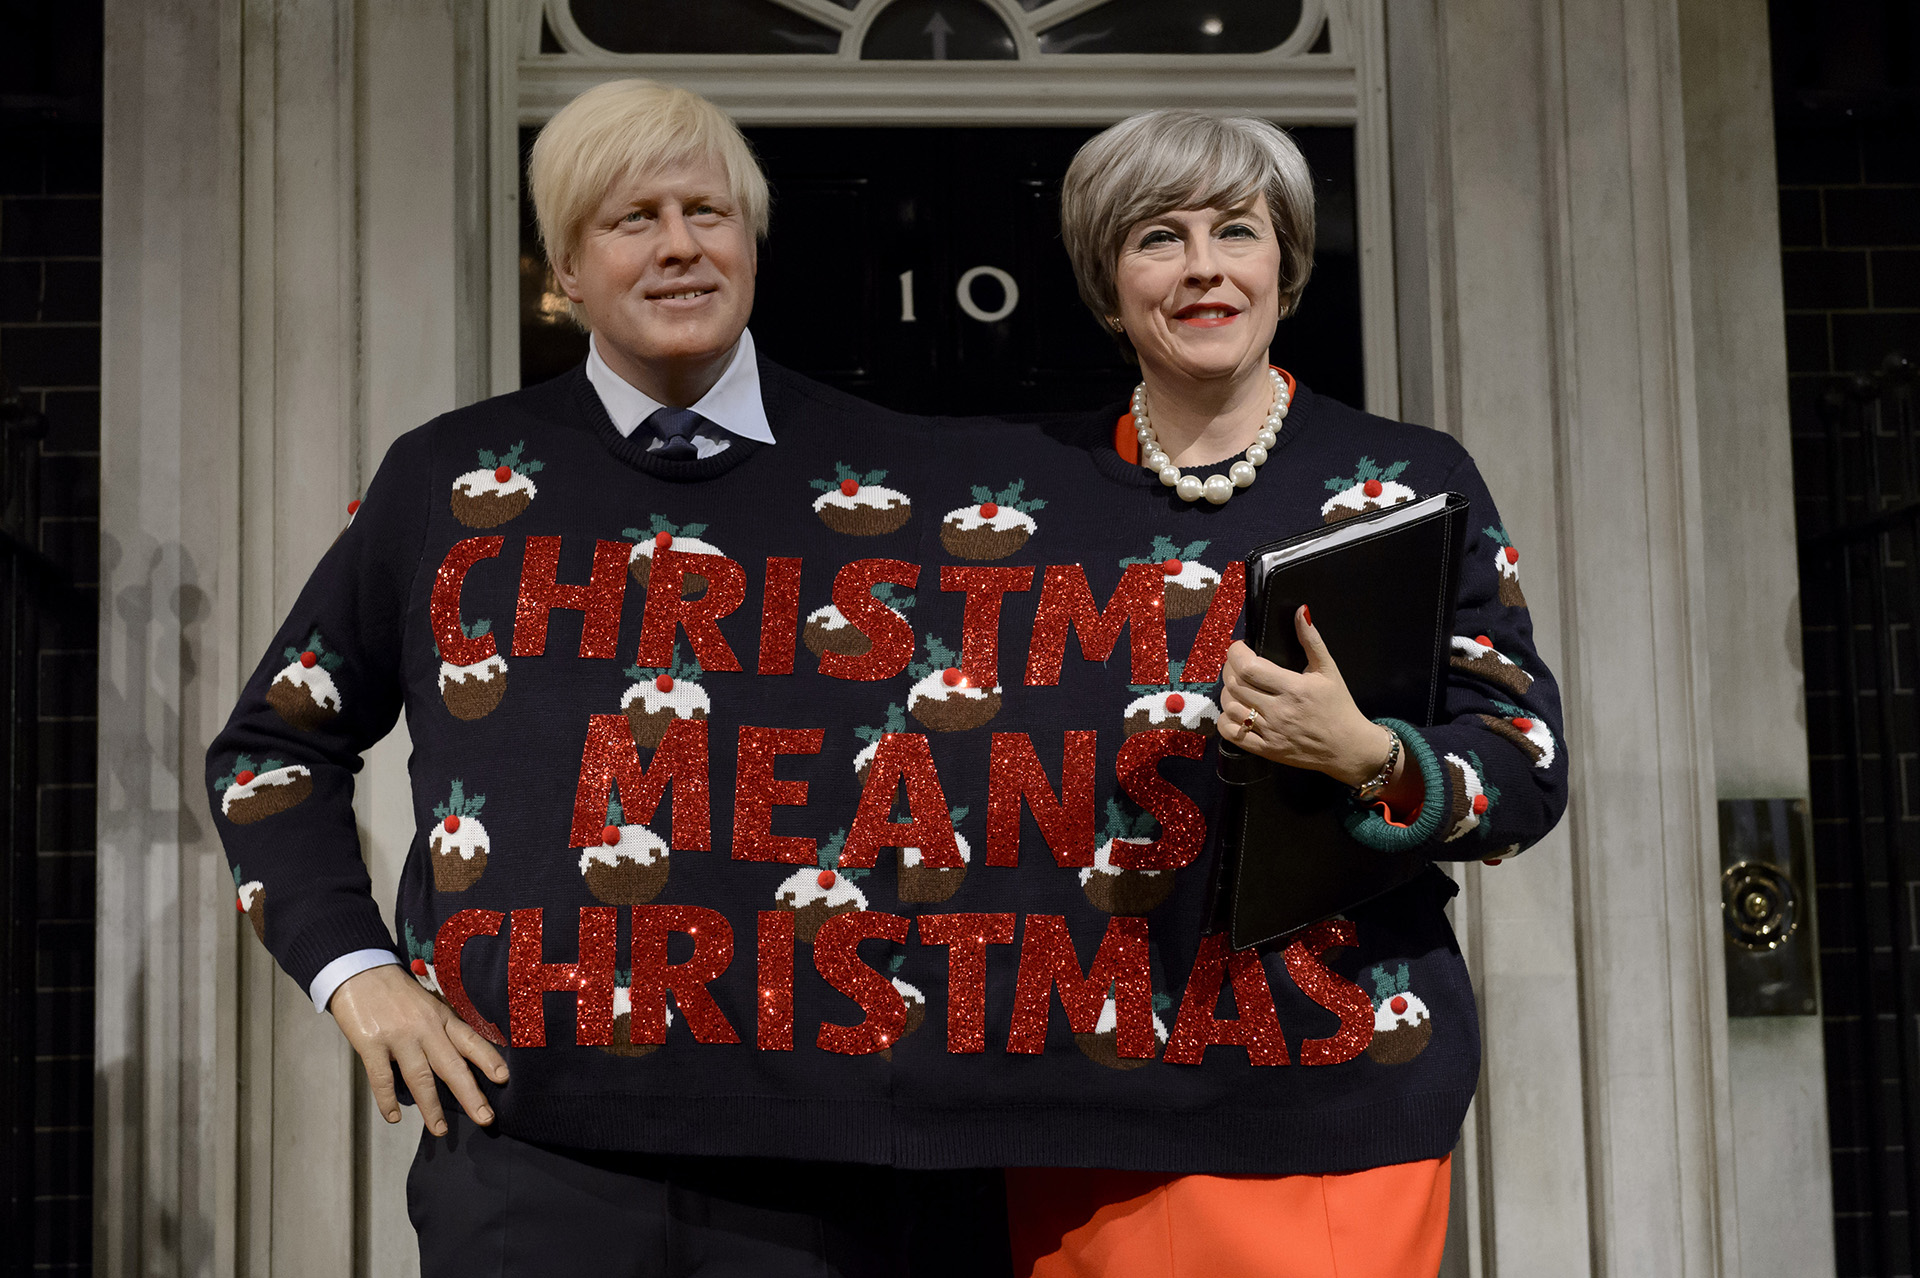 Boris Johnson Theresa May's figures in Christmas Jumper